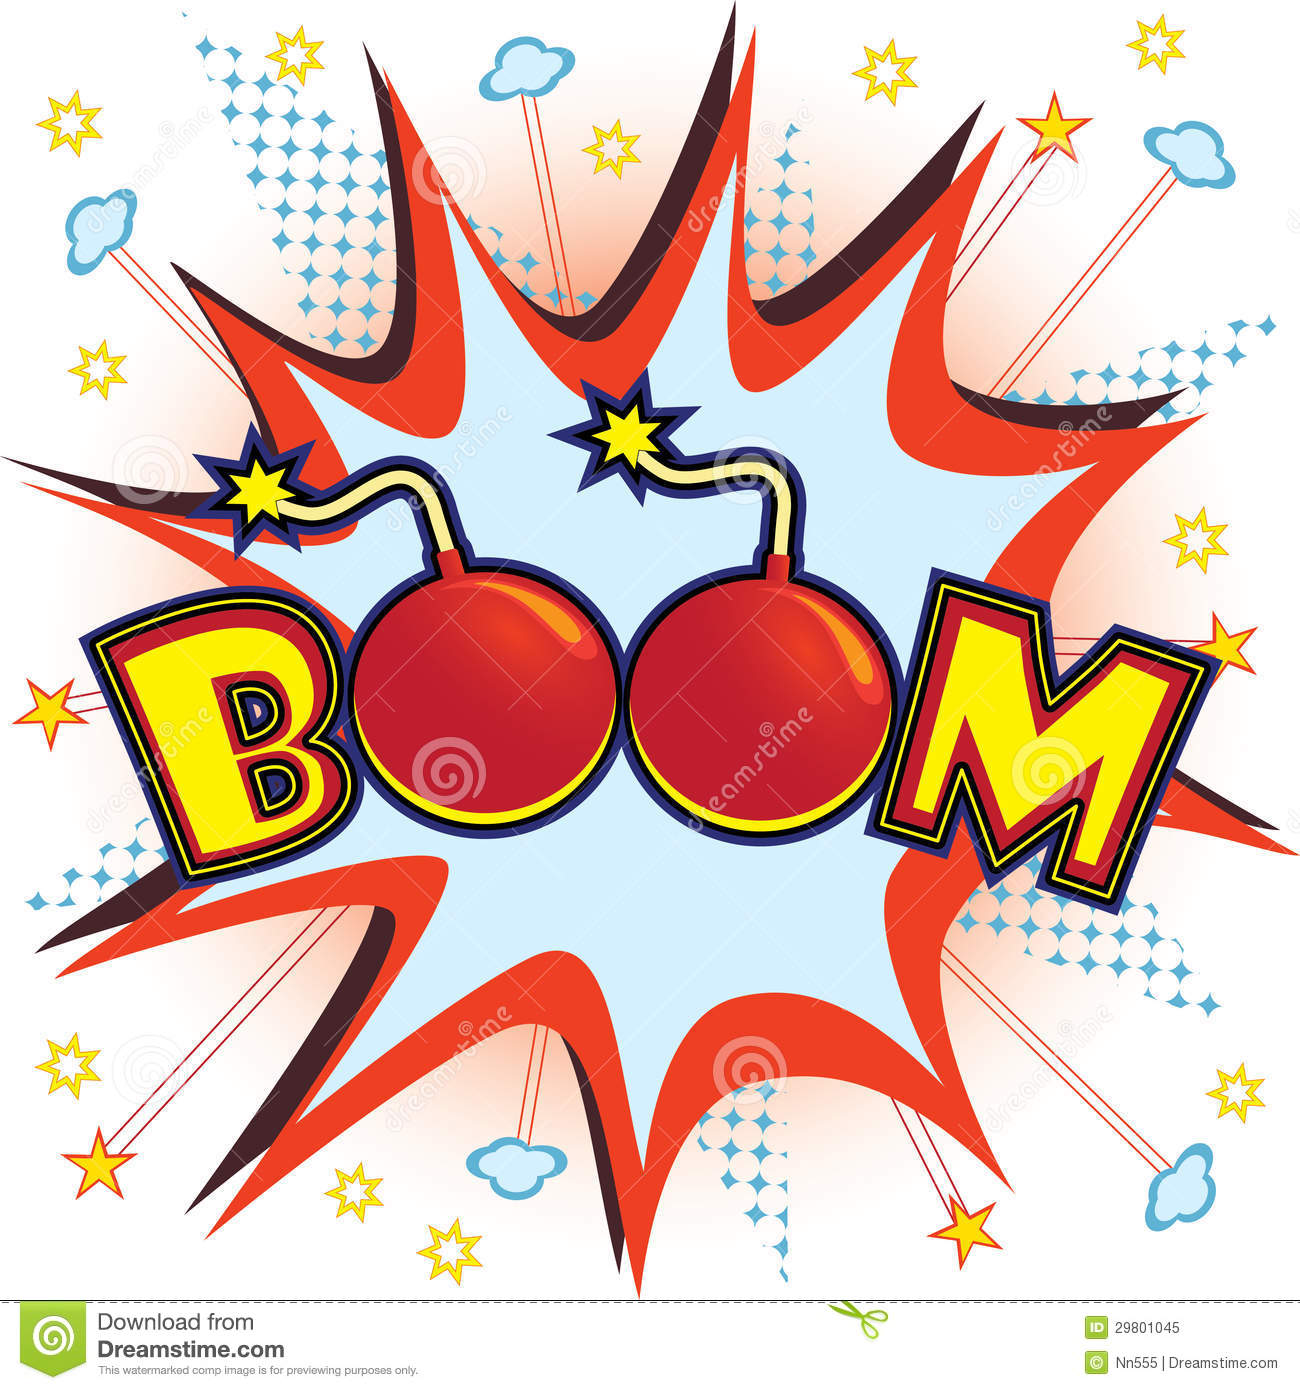 Comic clipart dynamite explosion Clipart Book Comic Boom Download